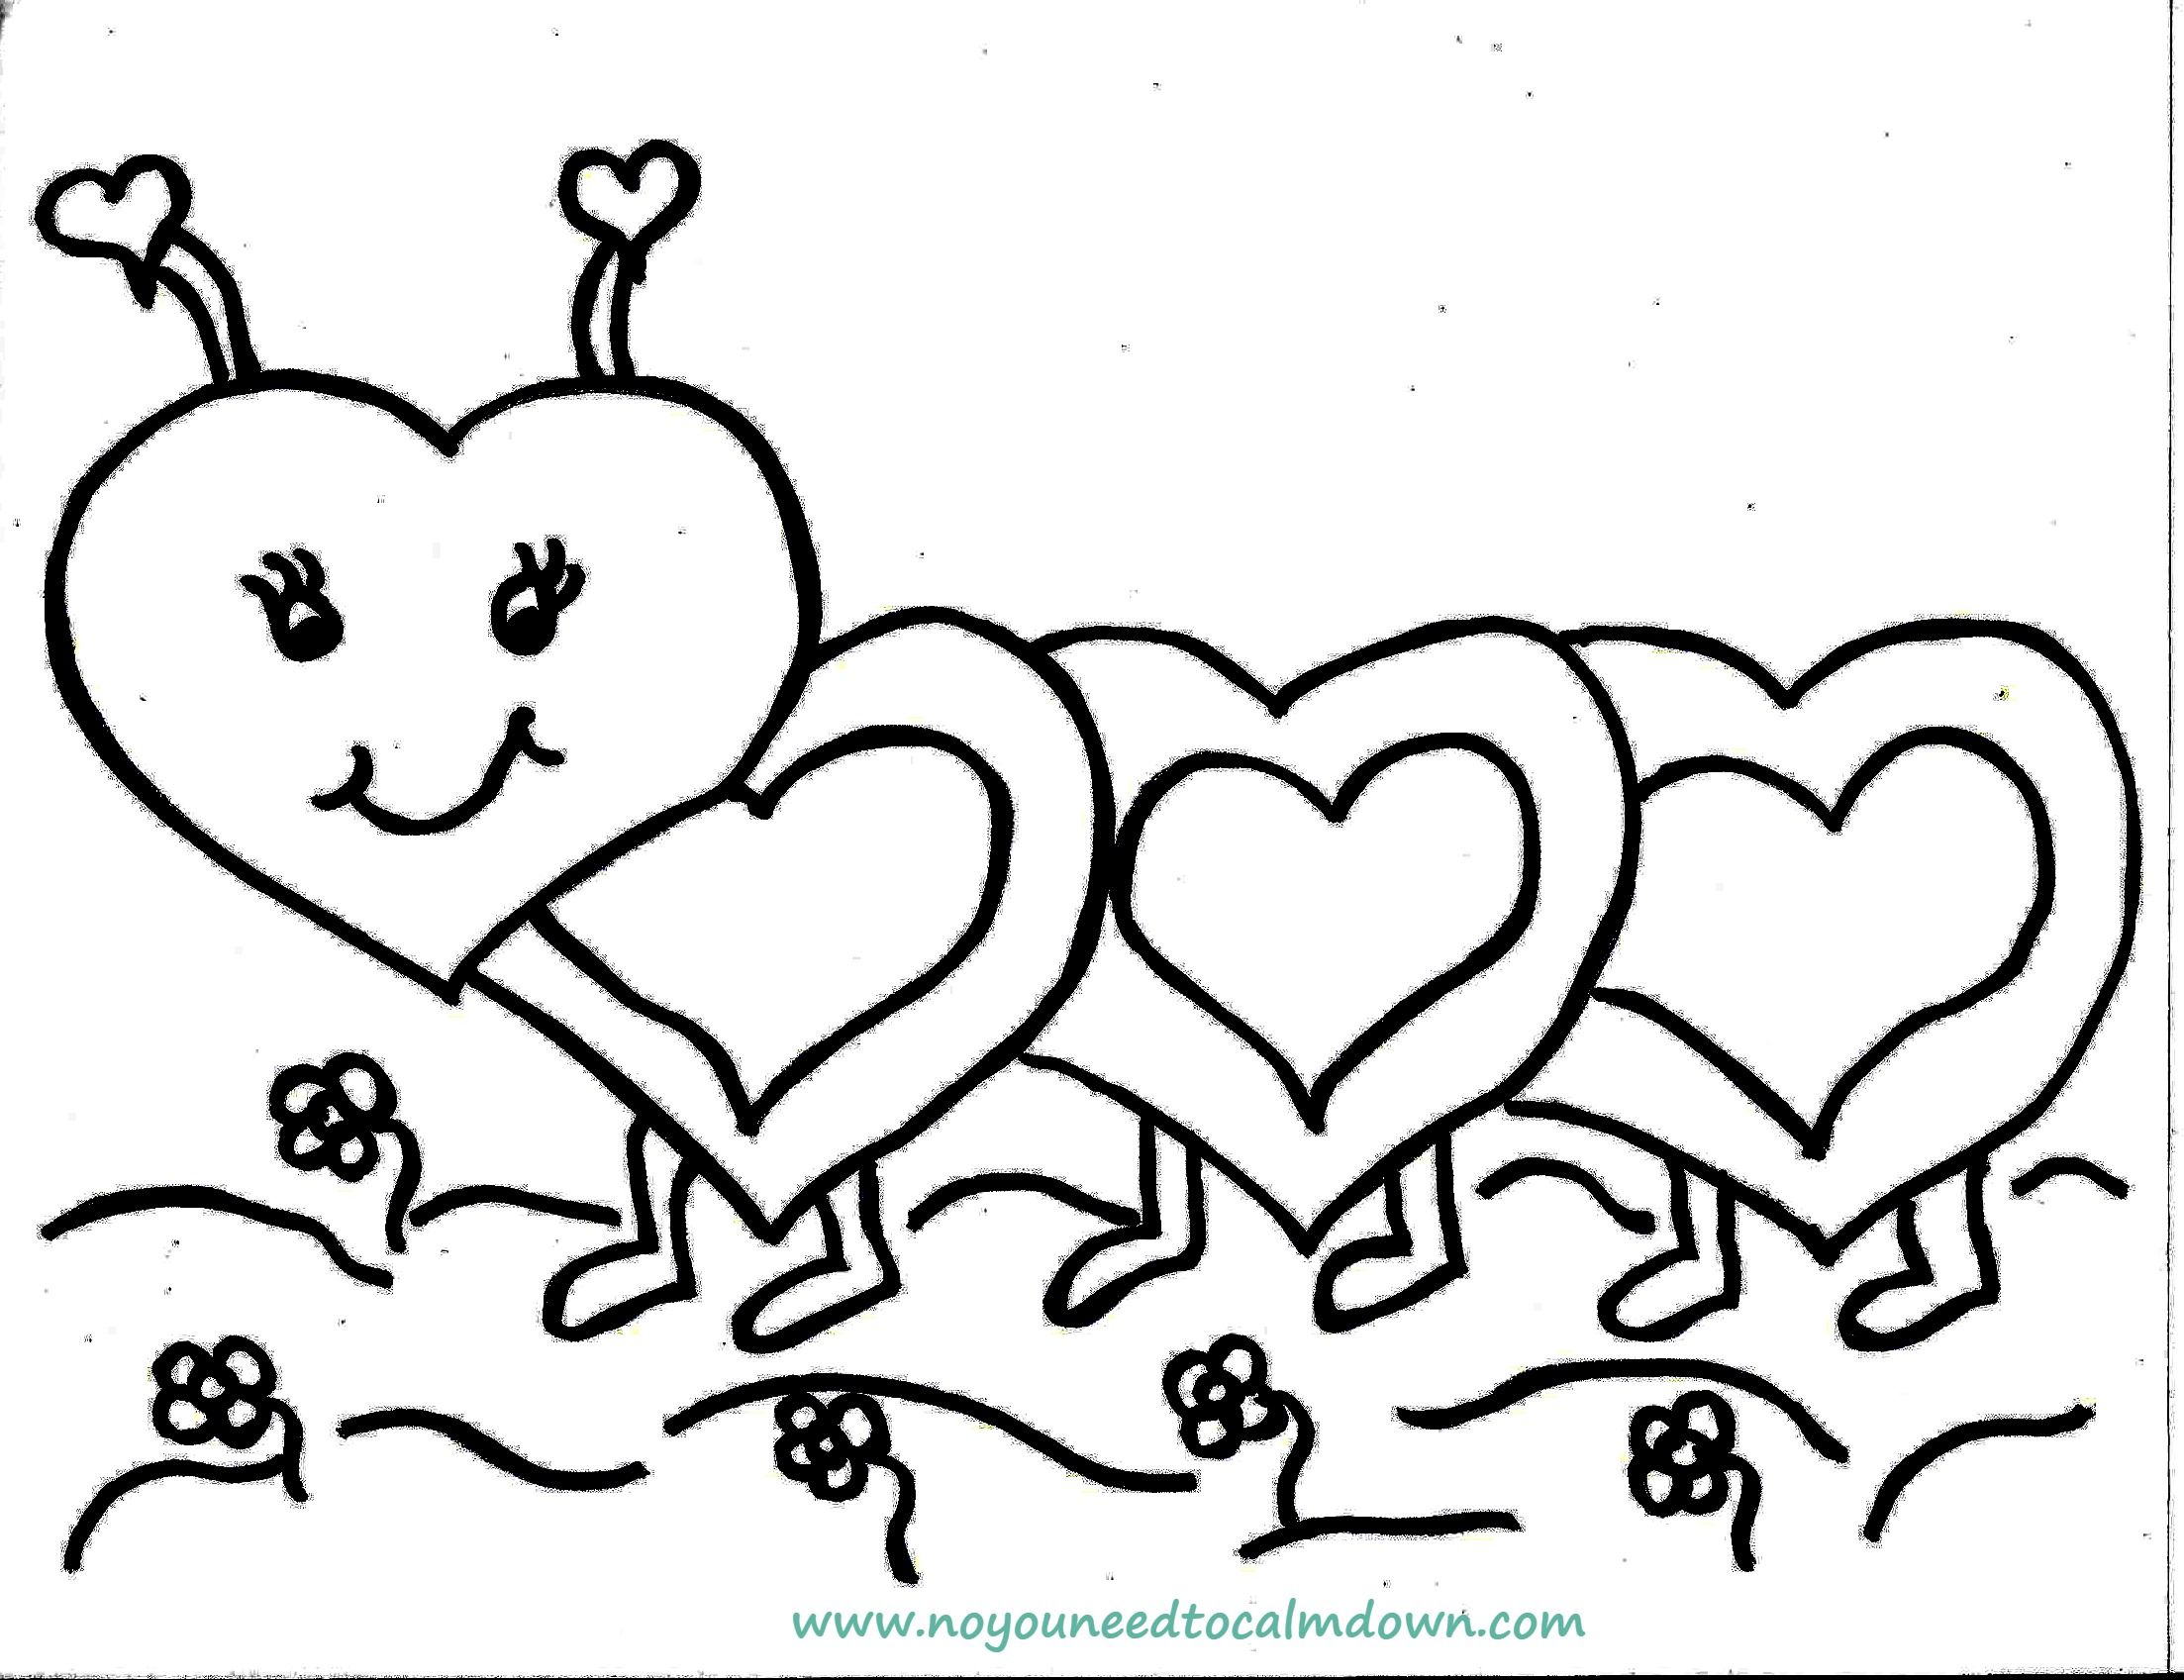 Bathroom Vanity Plans further 262897696970185808 as well Lovebug Coloring Page Feature 2 as well Free Printables moreover High Resolution Maps. on family planning tips